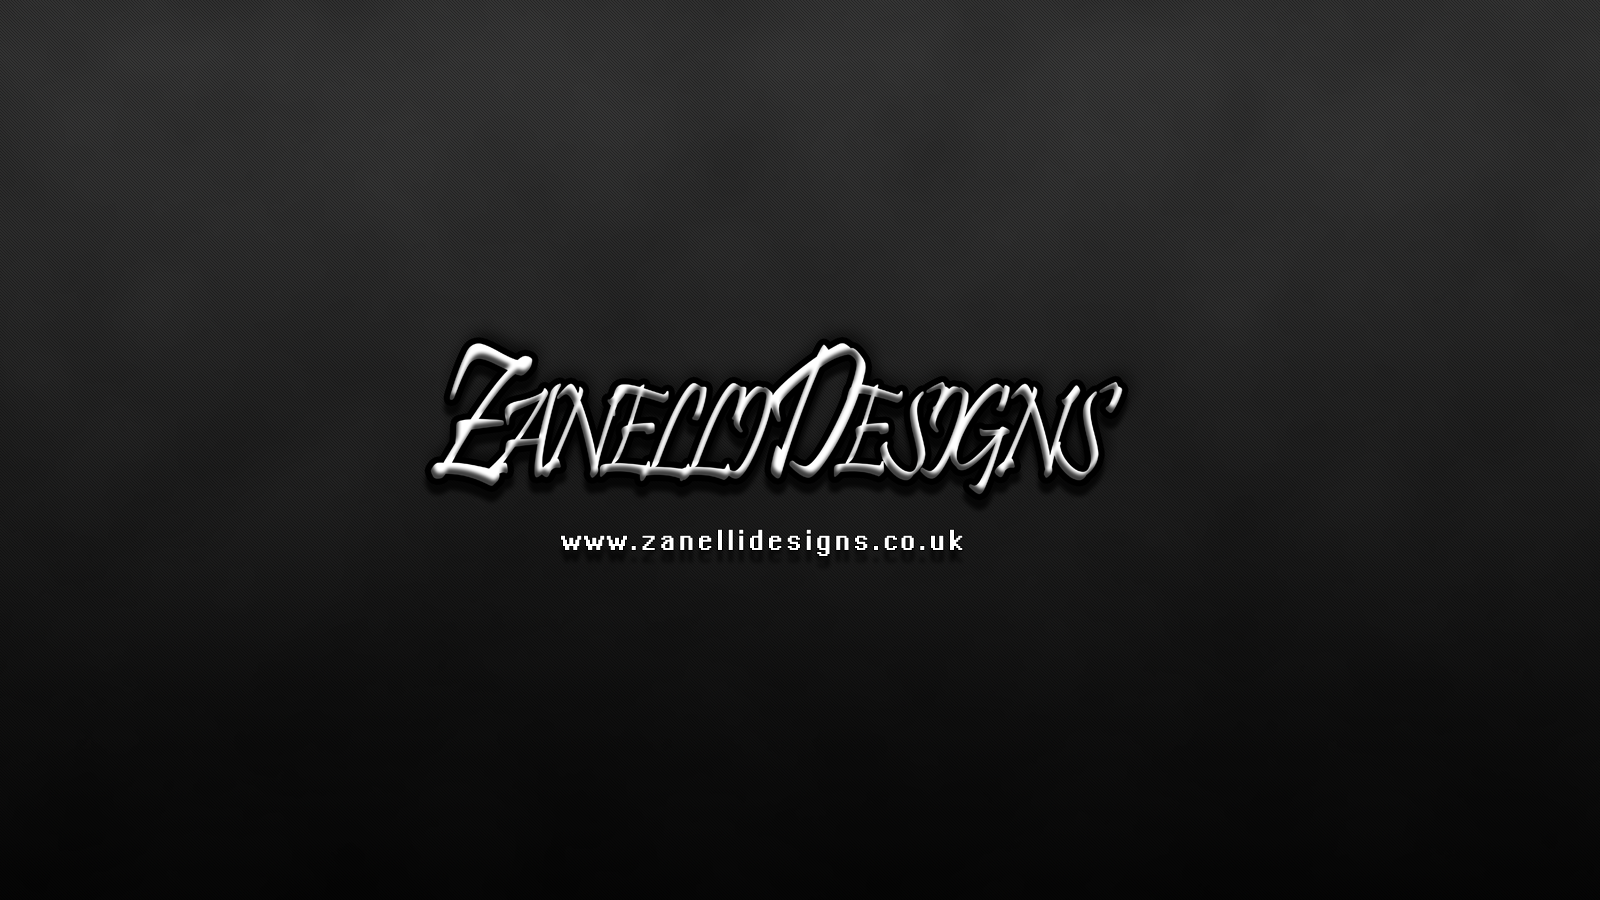 Zanelli Designs Wallpaper 1600x900